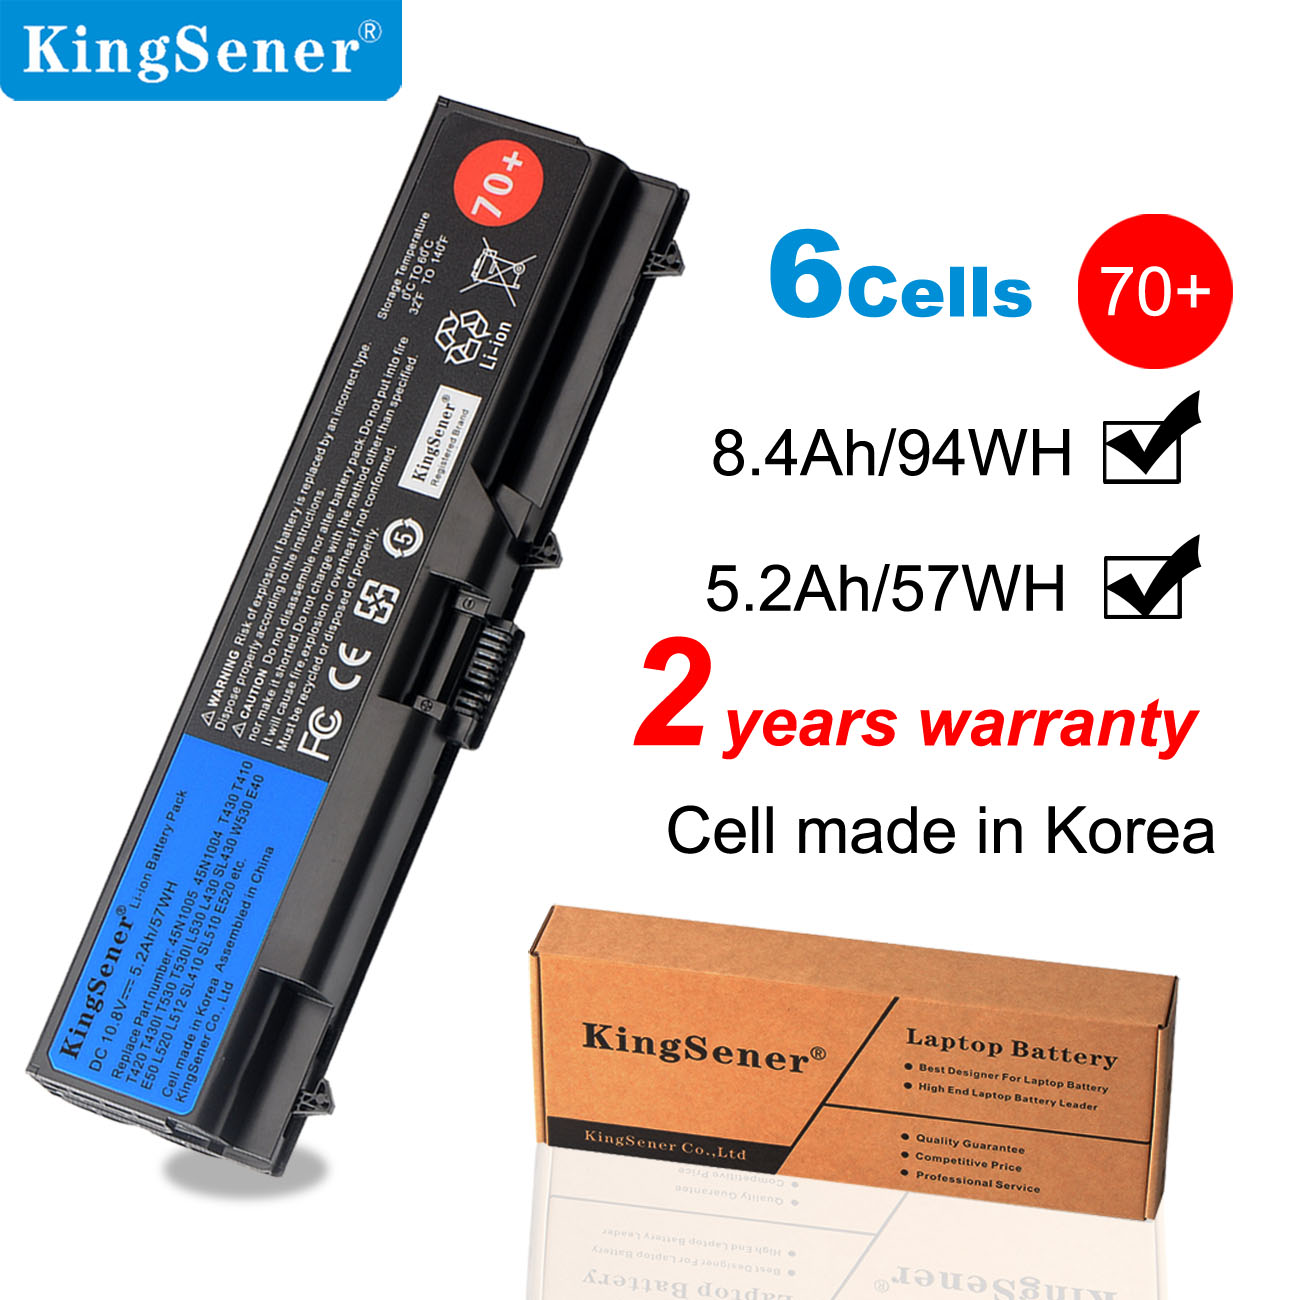 Аккумулятор KingSener 10,8 В 5200 мАч для ноутбука Lenovo ThinkPad T430 T430I L430 T530 T530I L530 W530 45N1005 45N1004 45N1001 45N1000|laptop battery for lenovo|laptop batterybattery for lenovo laptop | АлиЭкспресс